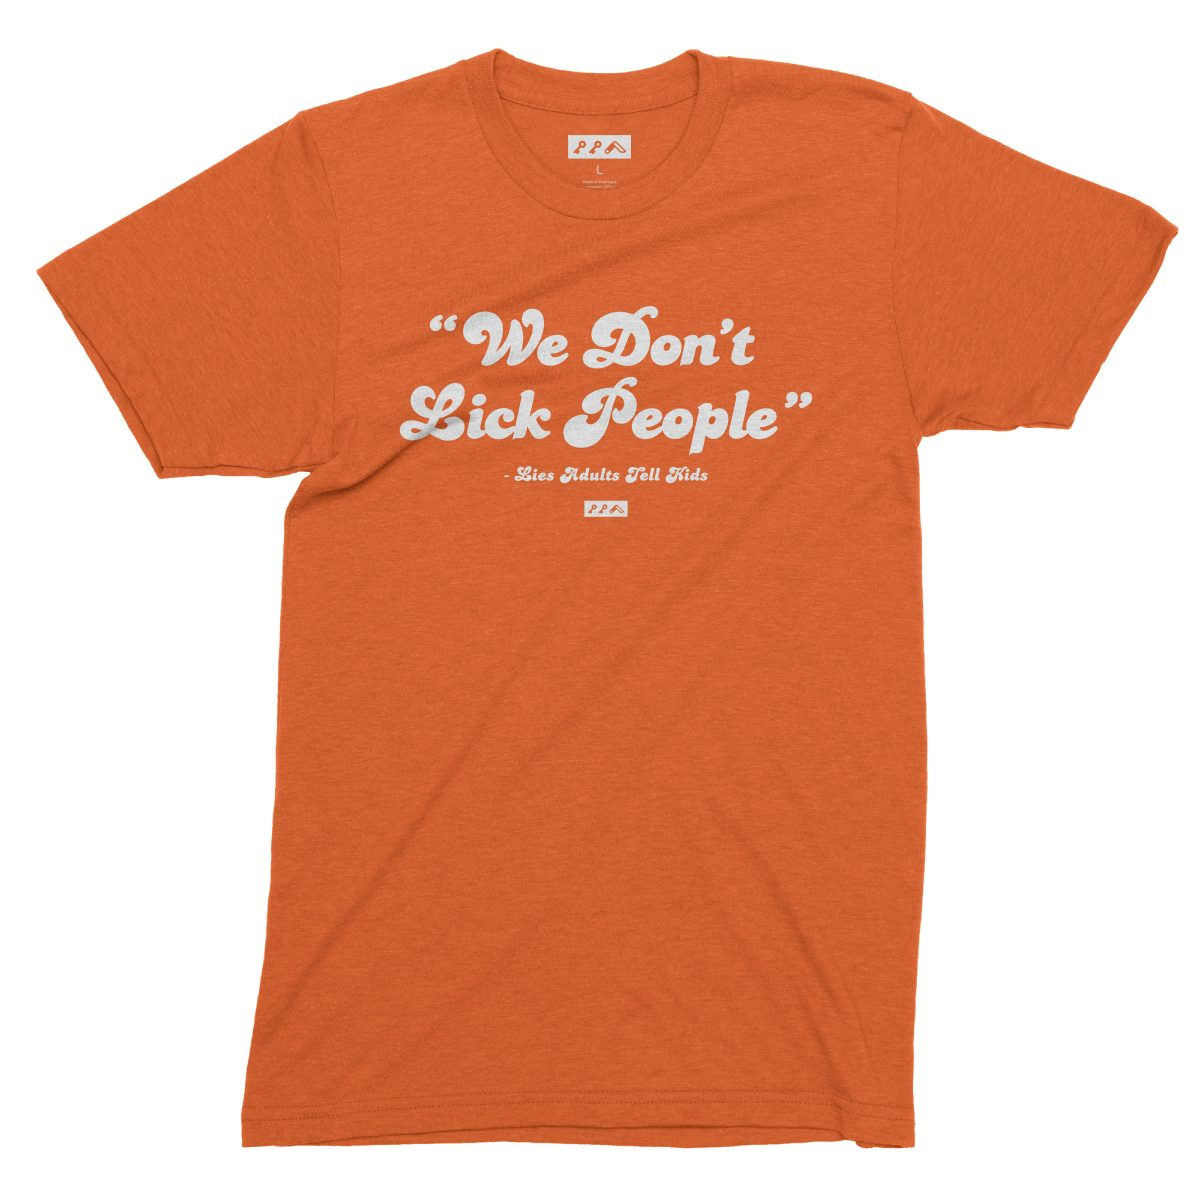 """WE DON'T LICK PEOPLE lies adults tell kids"" funny shirts in tri-blend orange by kikicutt"